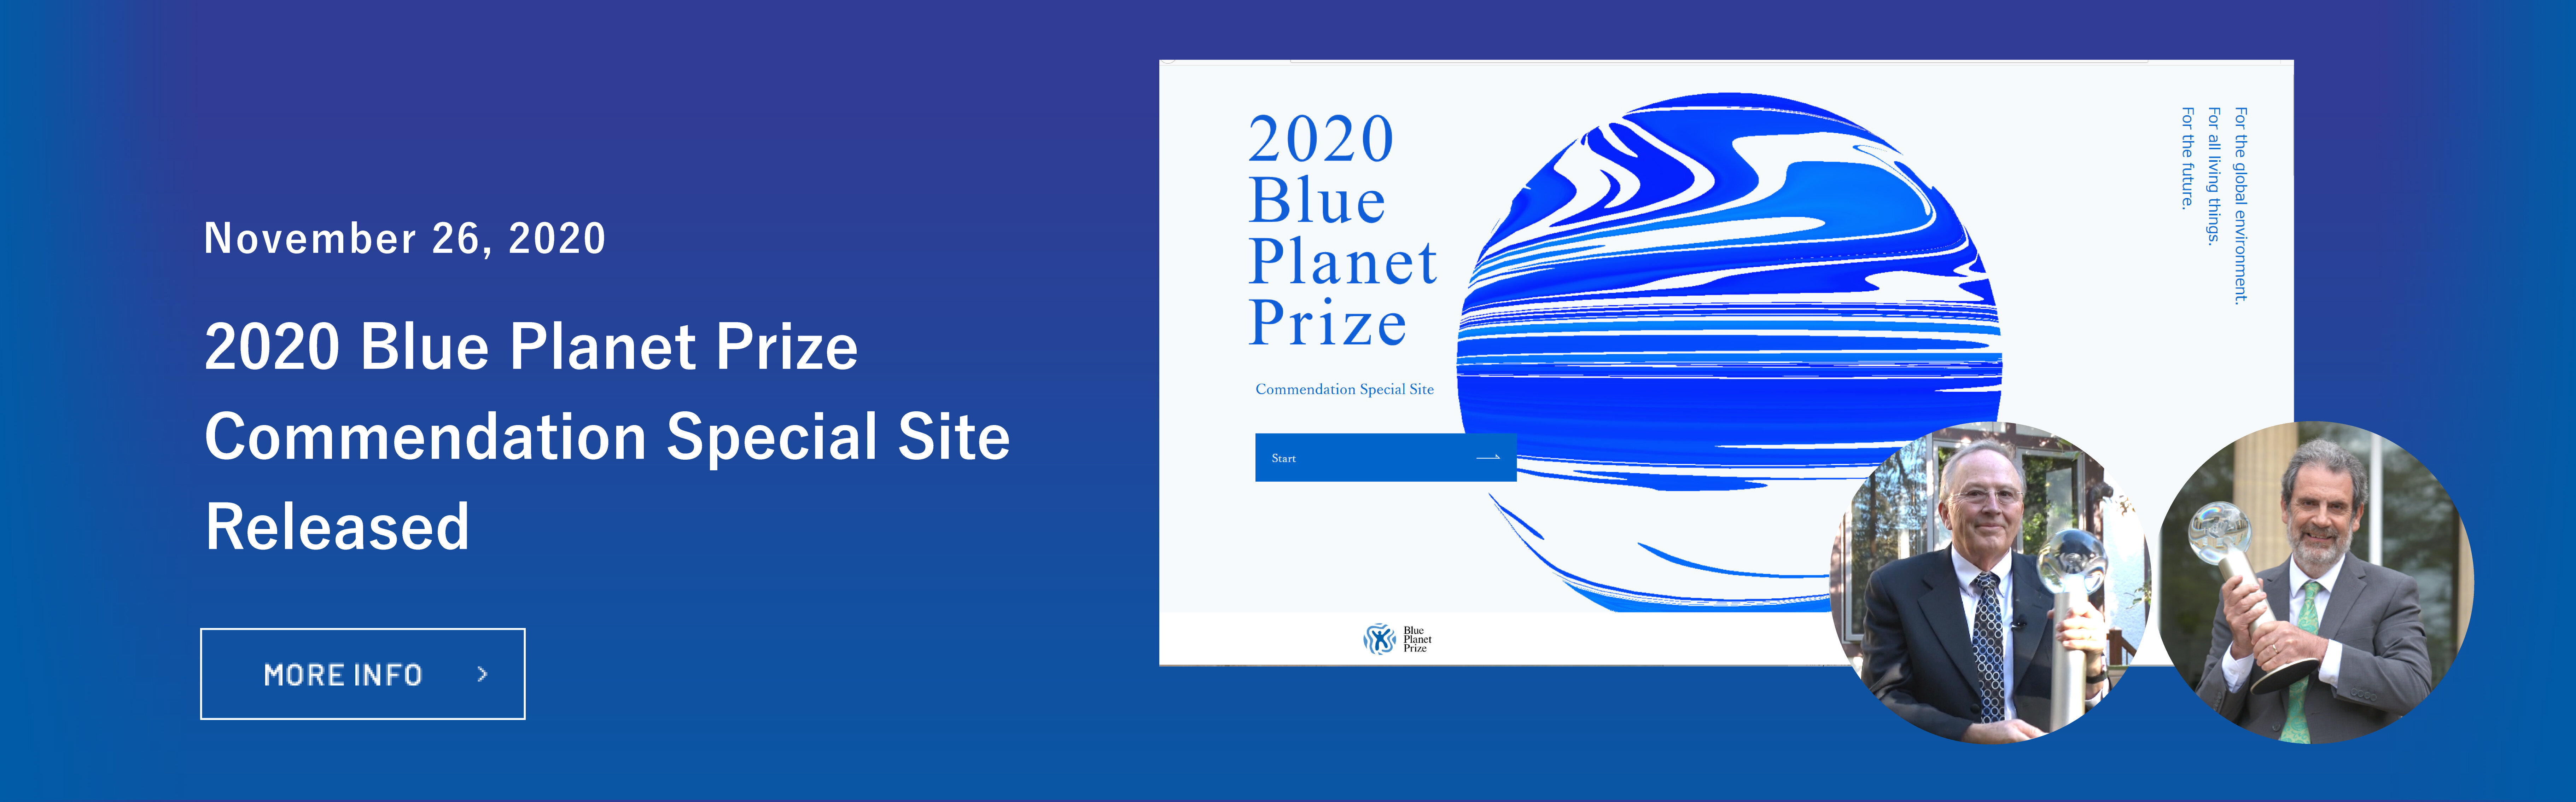 2020 Blue Planet Prize Commendation Special Site Released